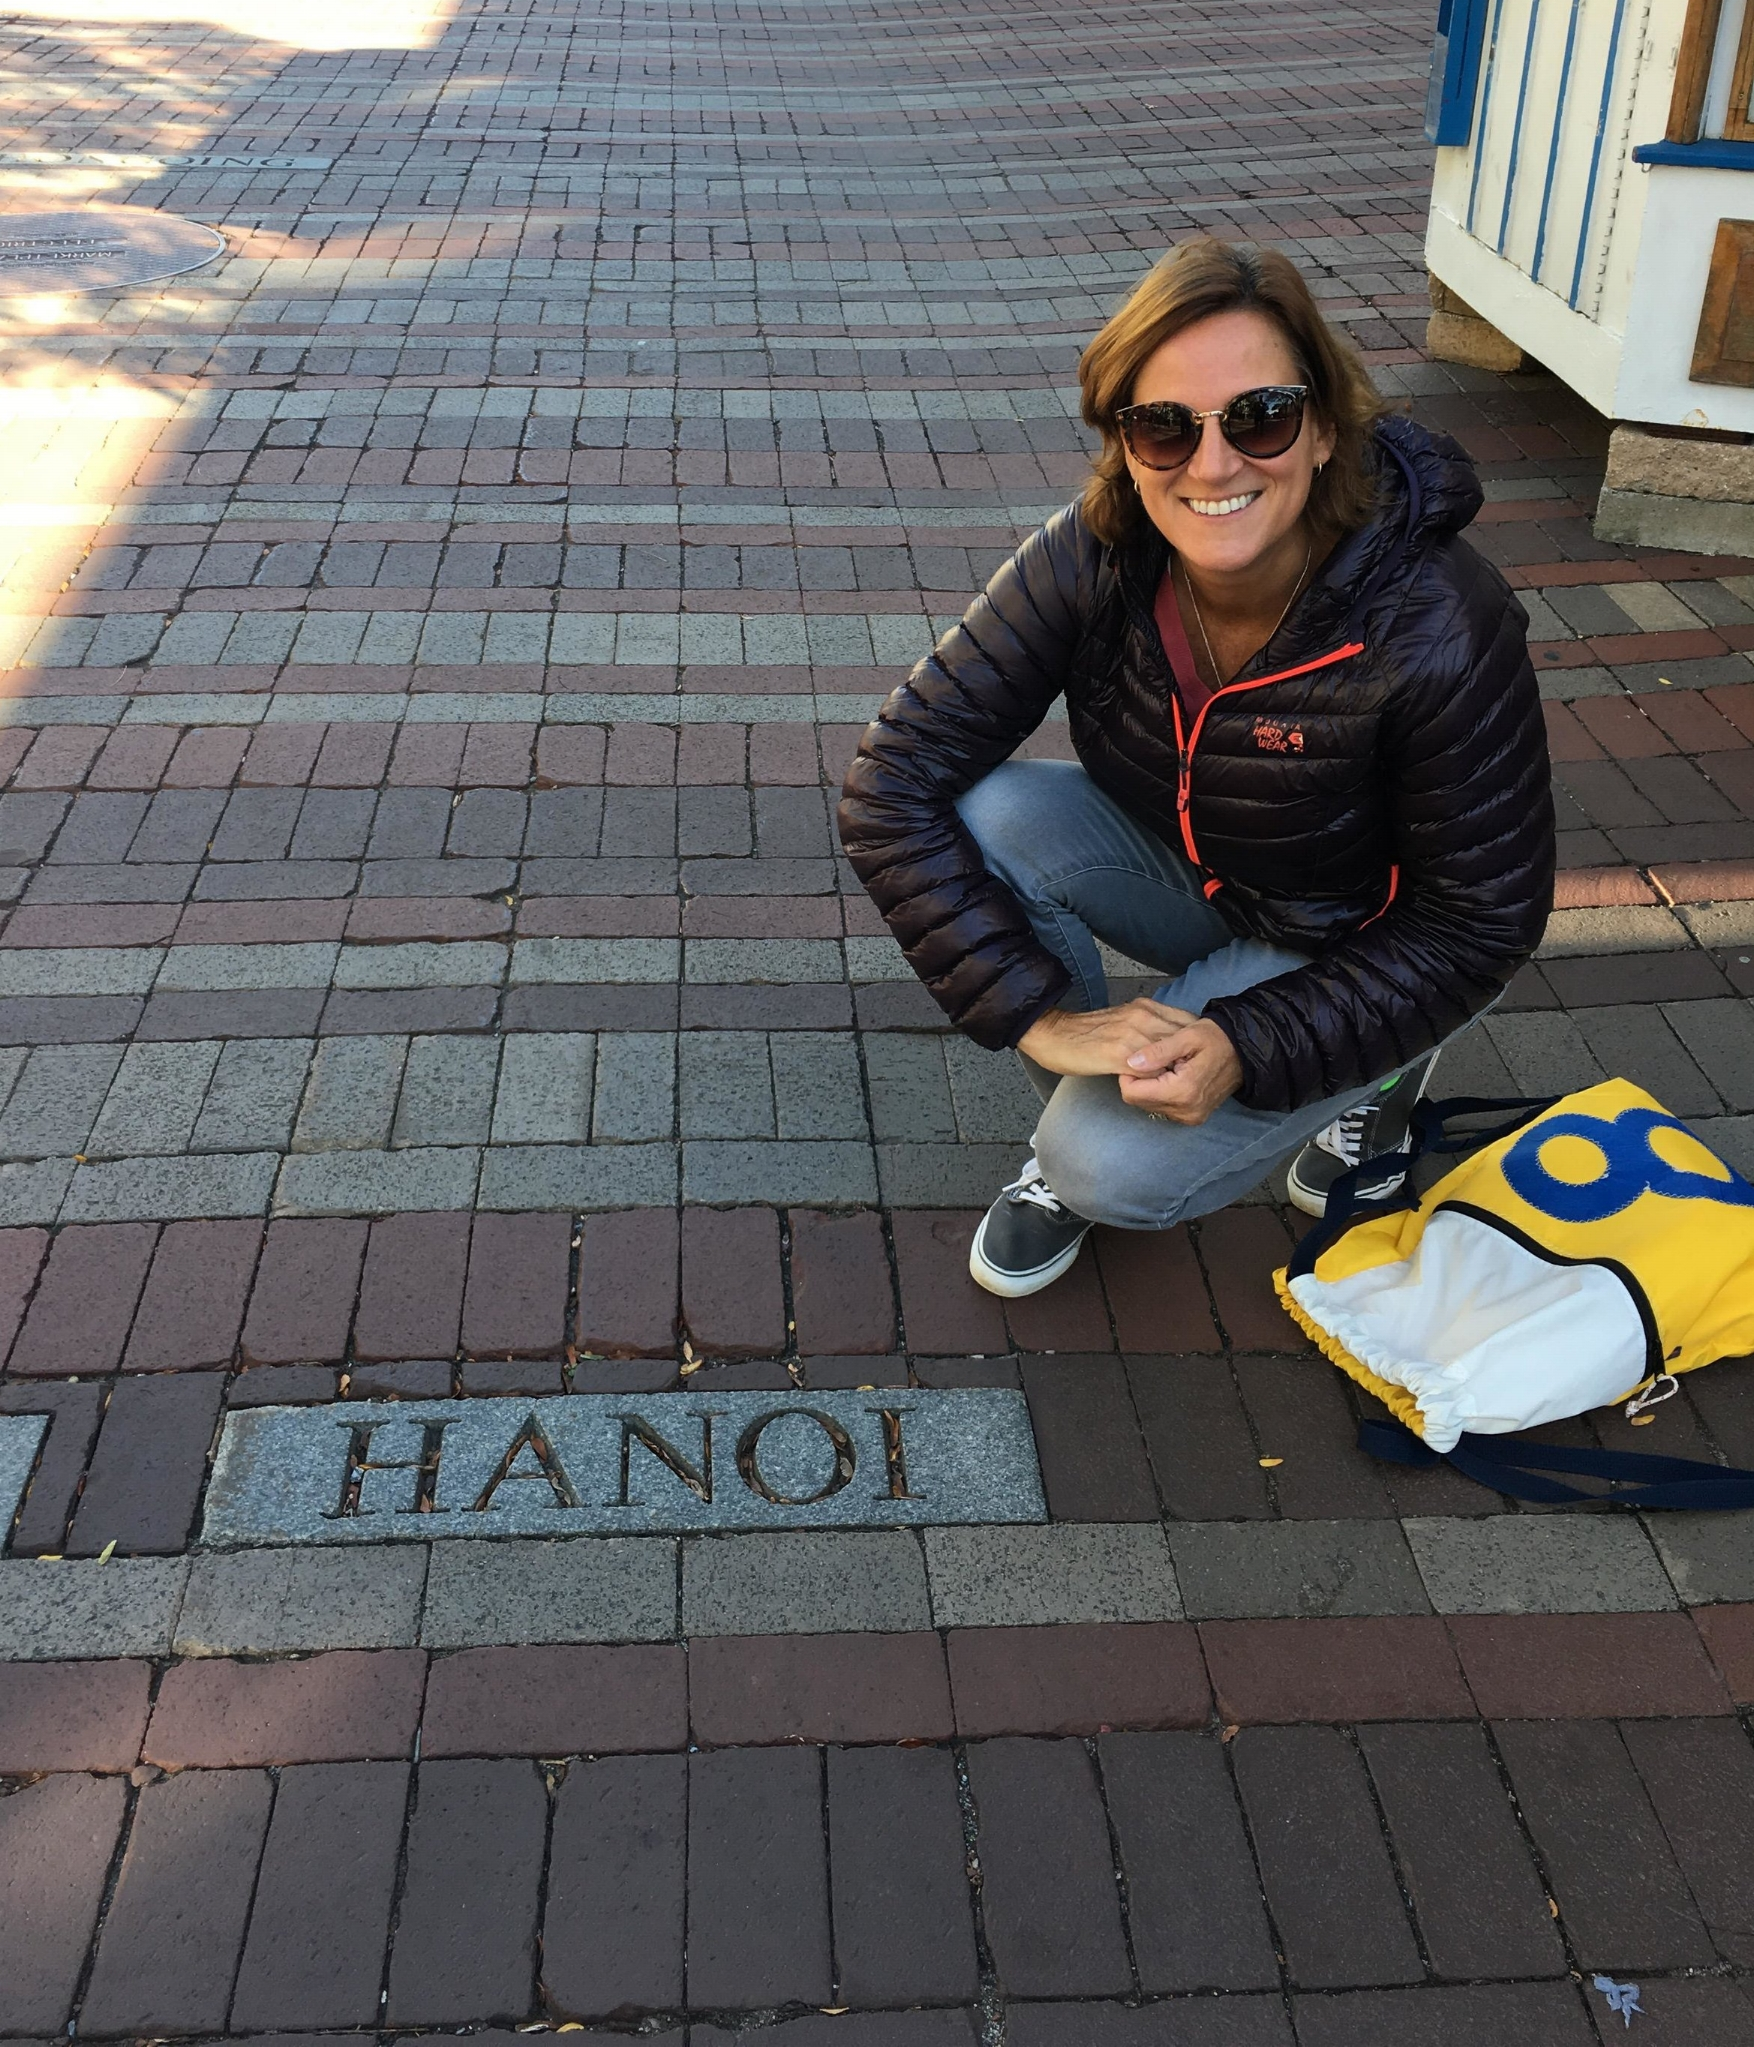 The Hanoi marker on Church Street in Burlington, Vermont